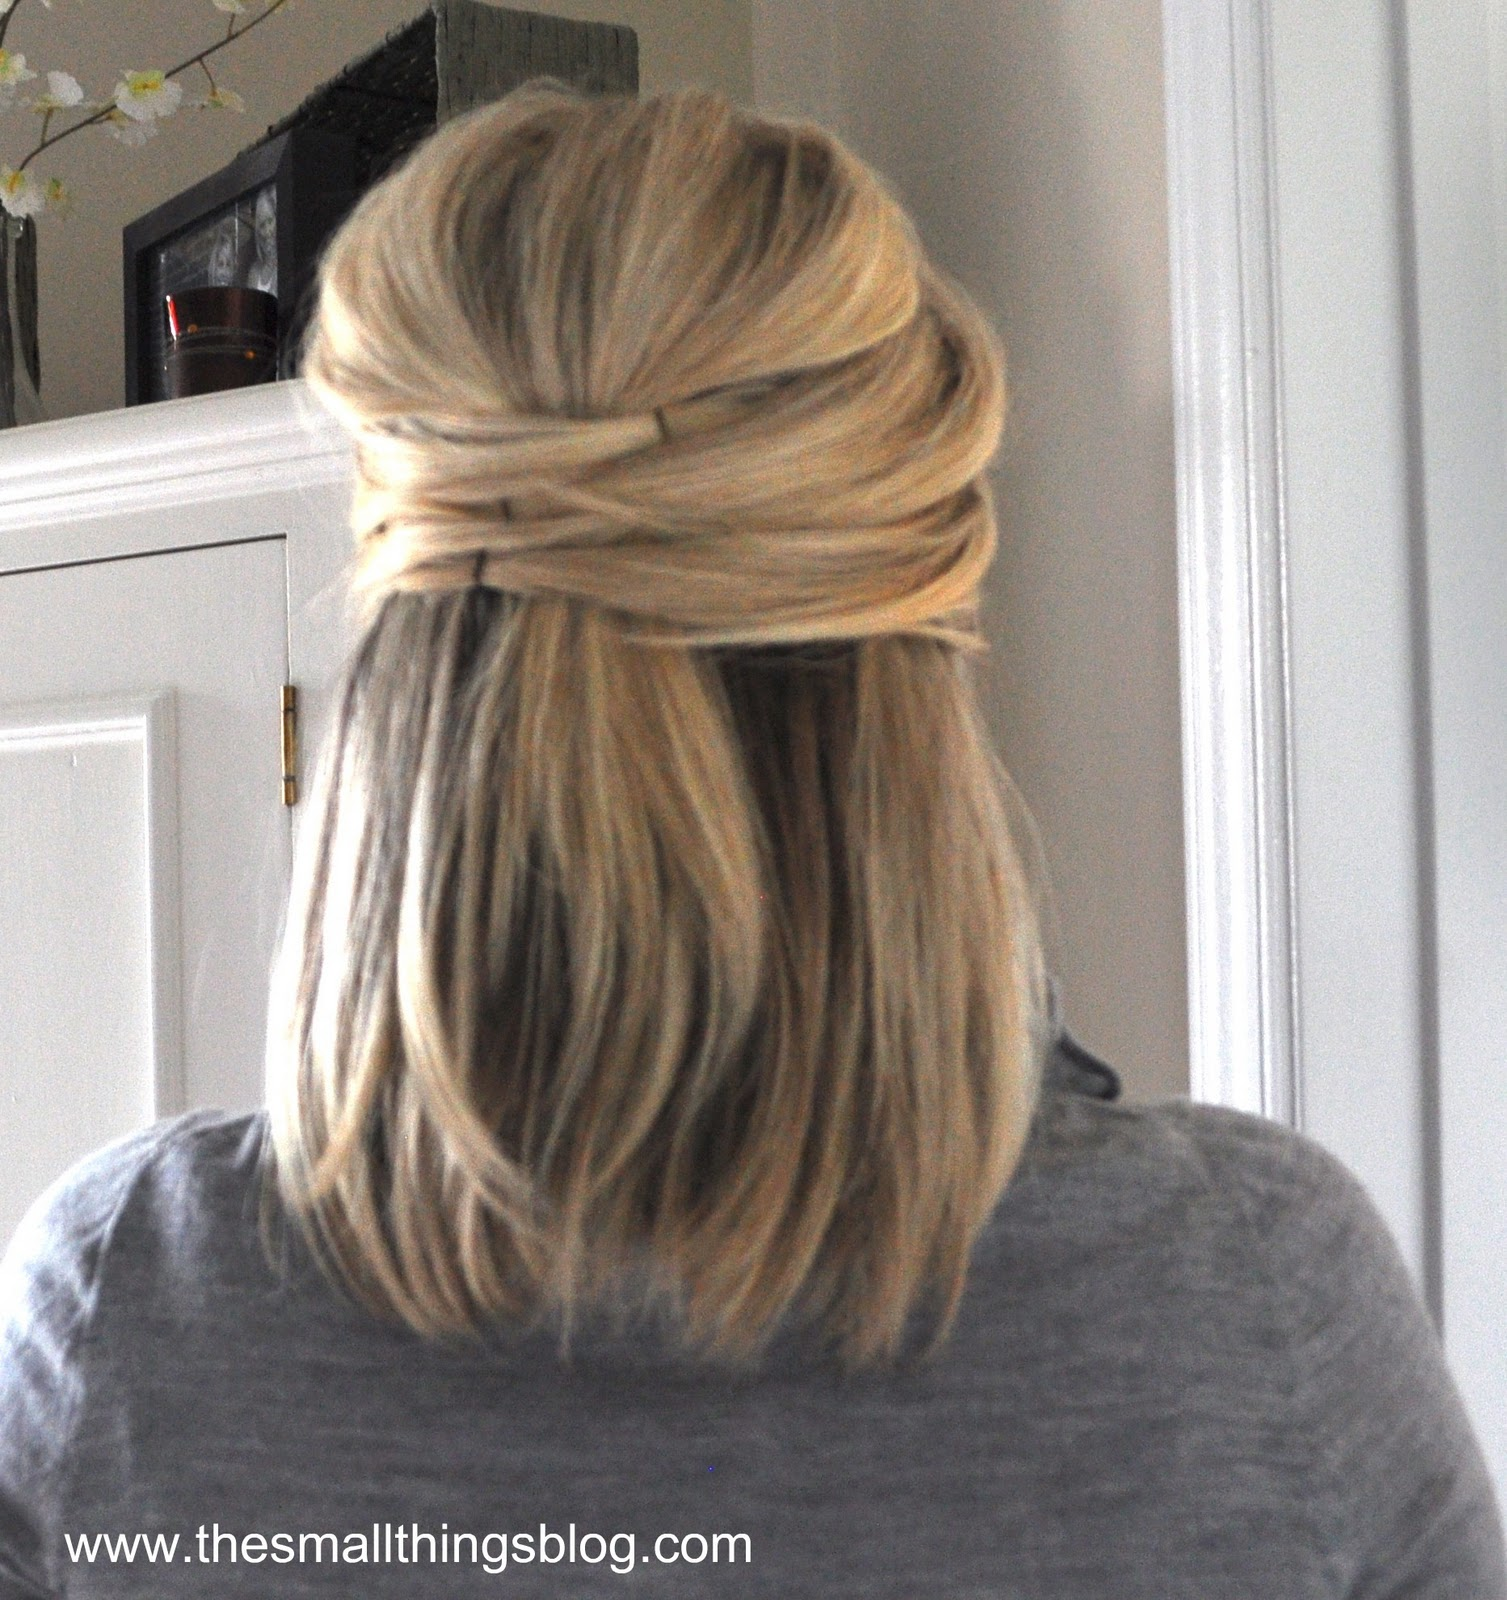 Medium Length Hairstyles For Weddings: The Small Things Blog